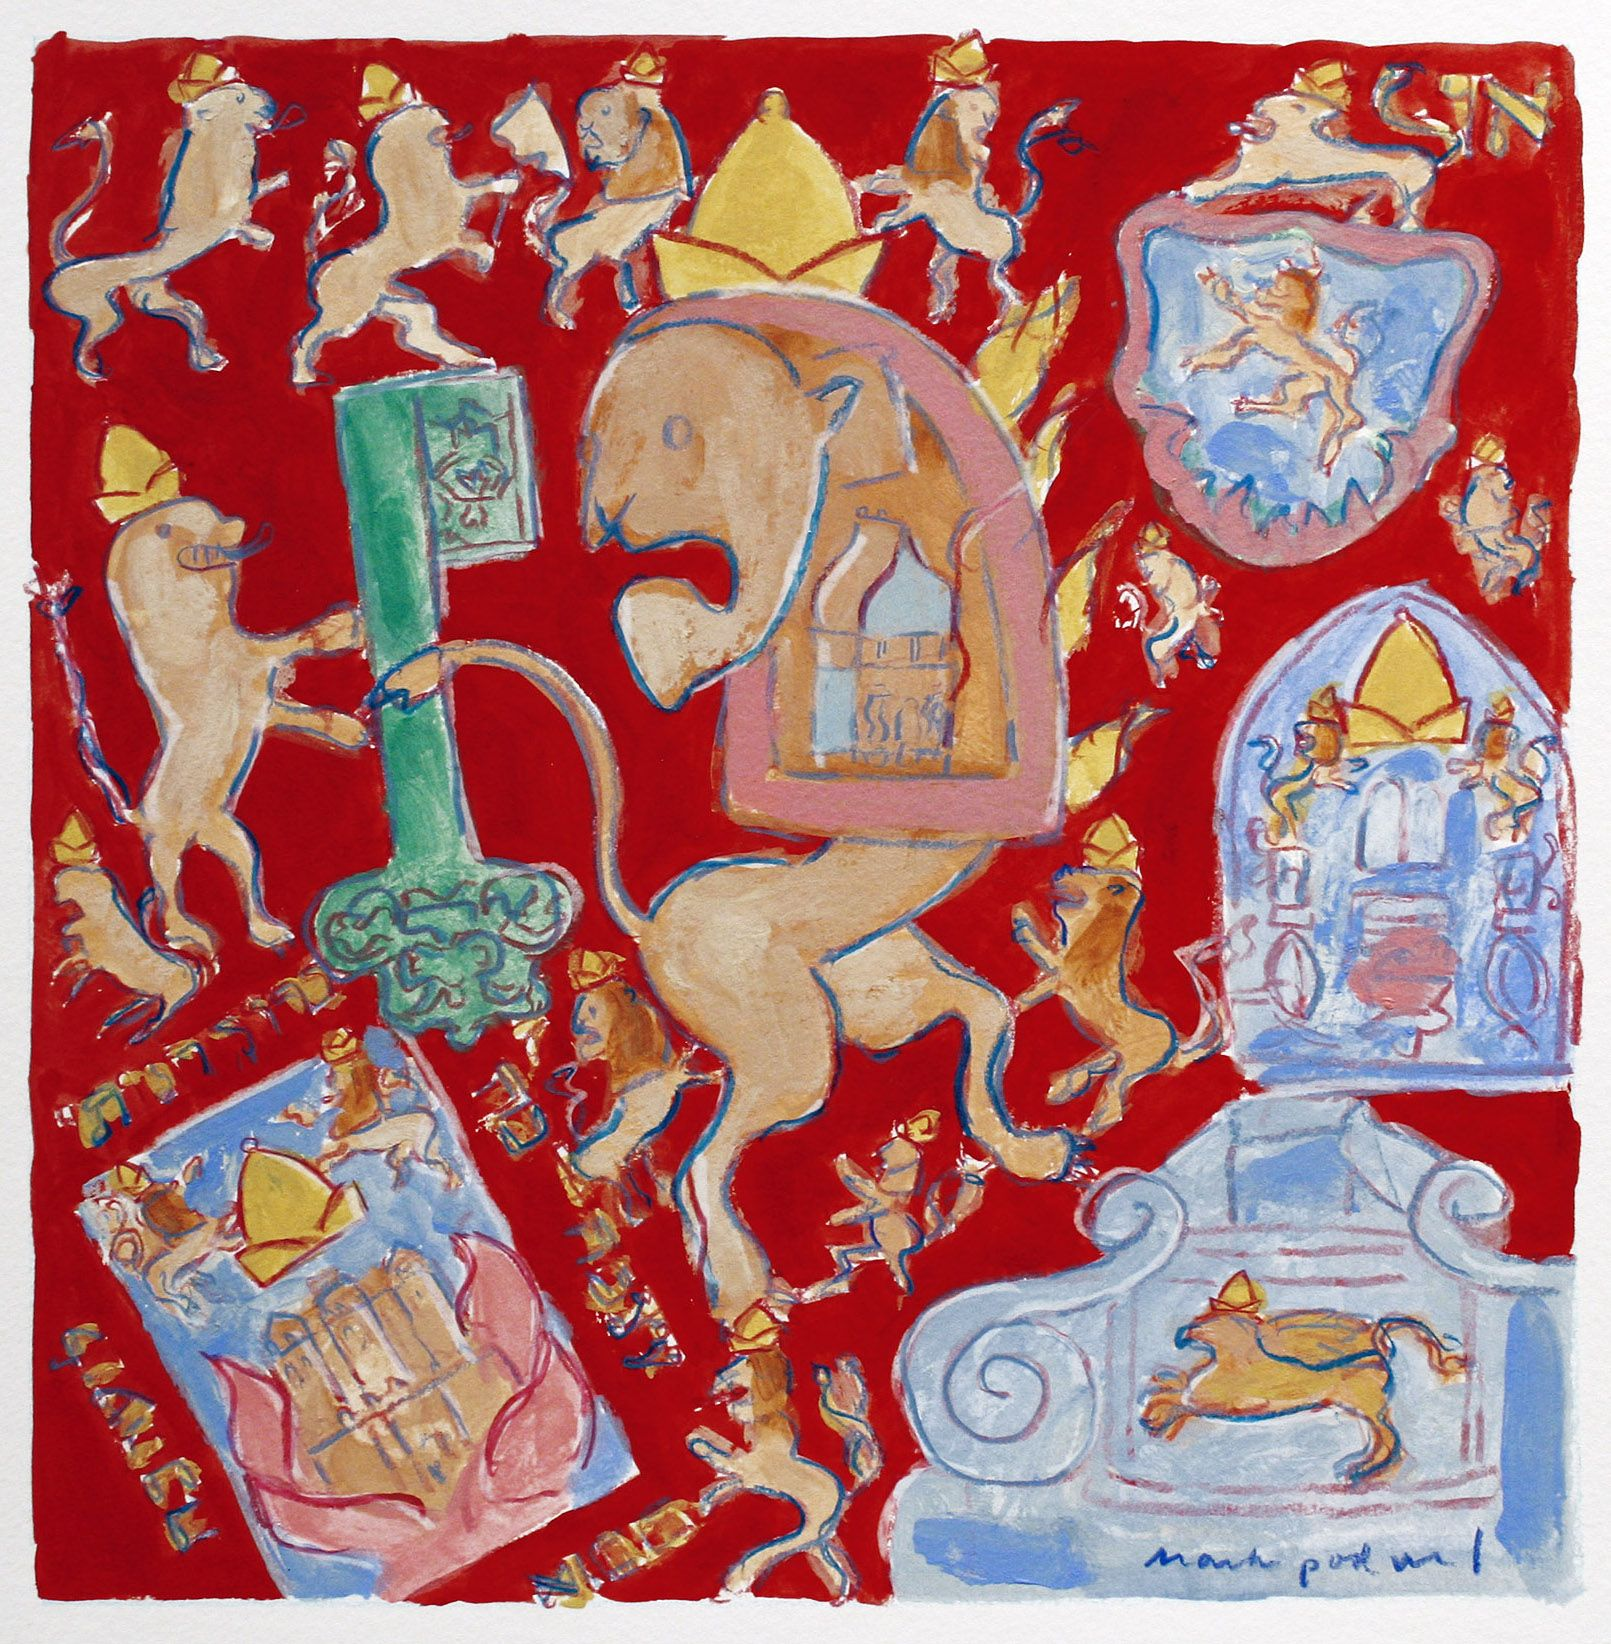 Mark Podwal, Lions of Judah (SOLD), 2008, acrylic, gouache and colored pencil on paper, 12 x 12 inches